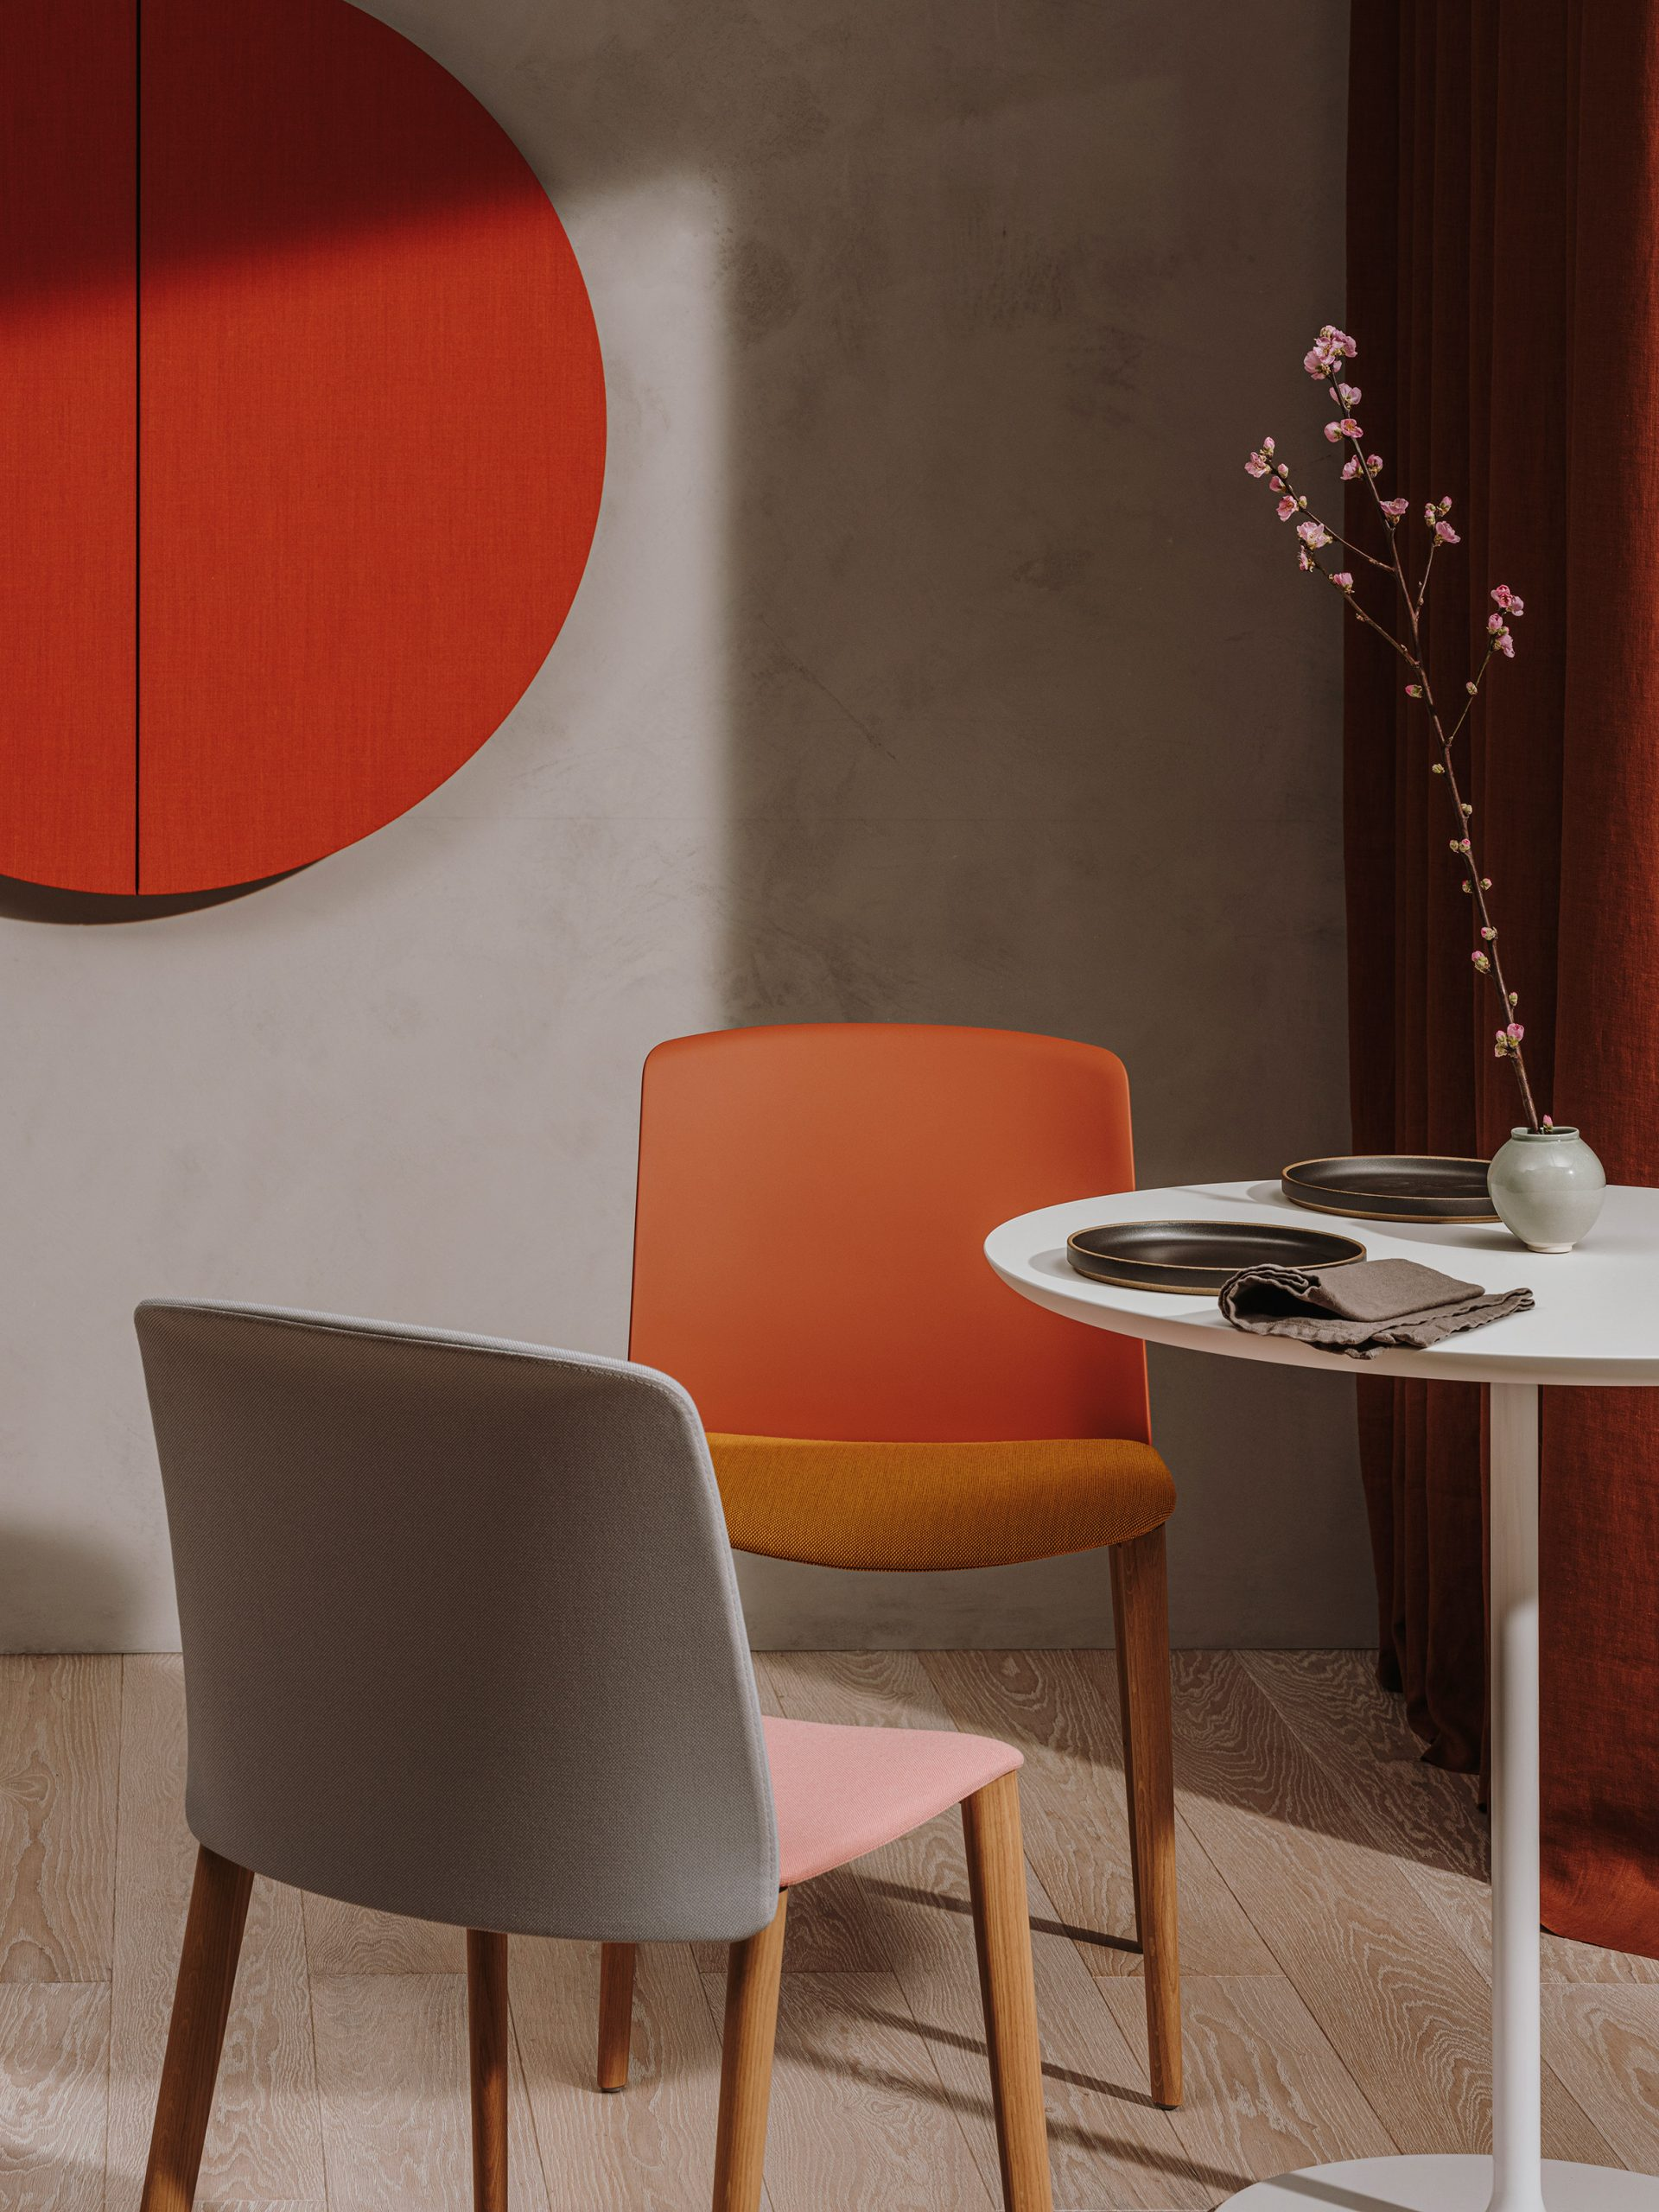 Mixed material chairs in an office